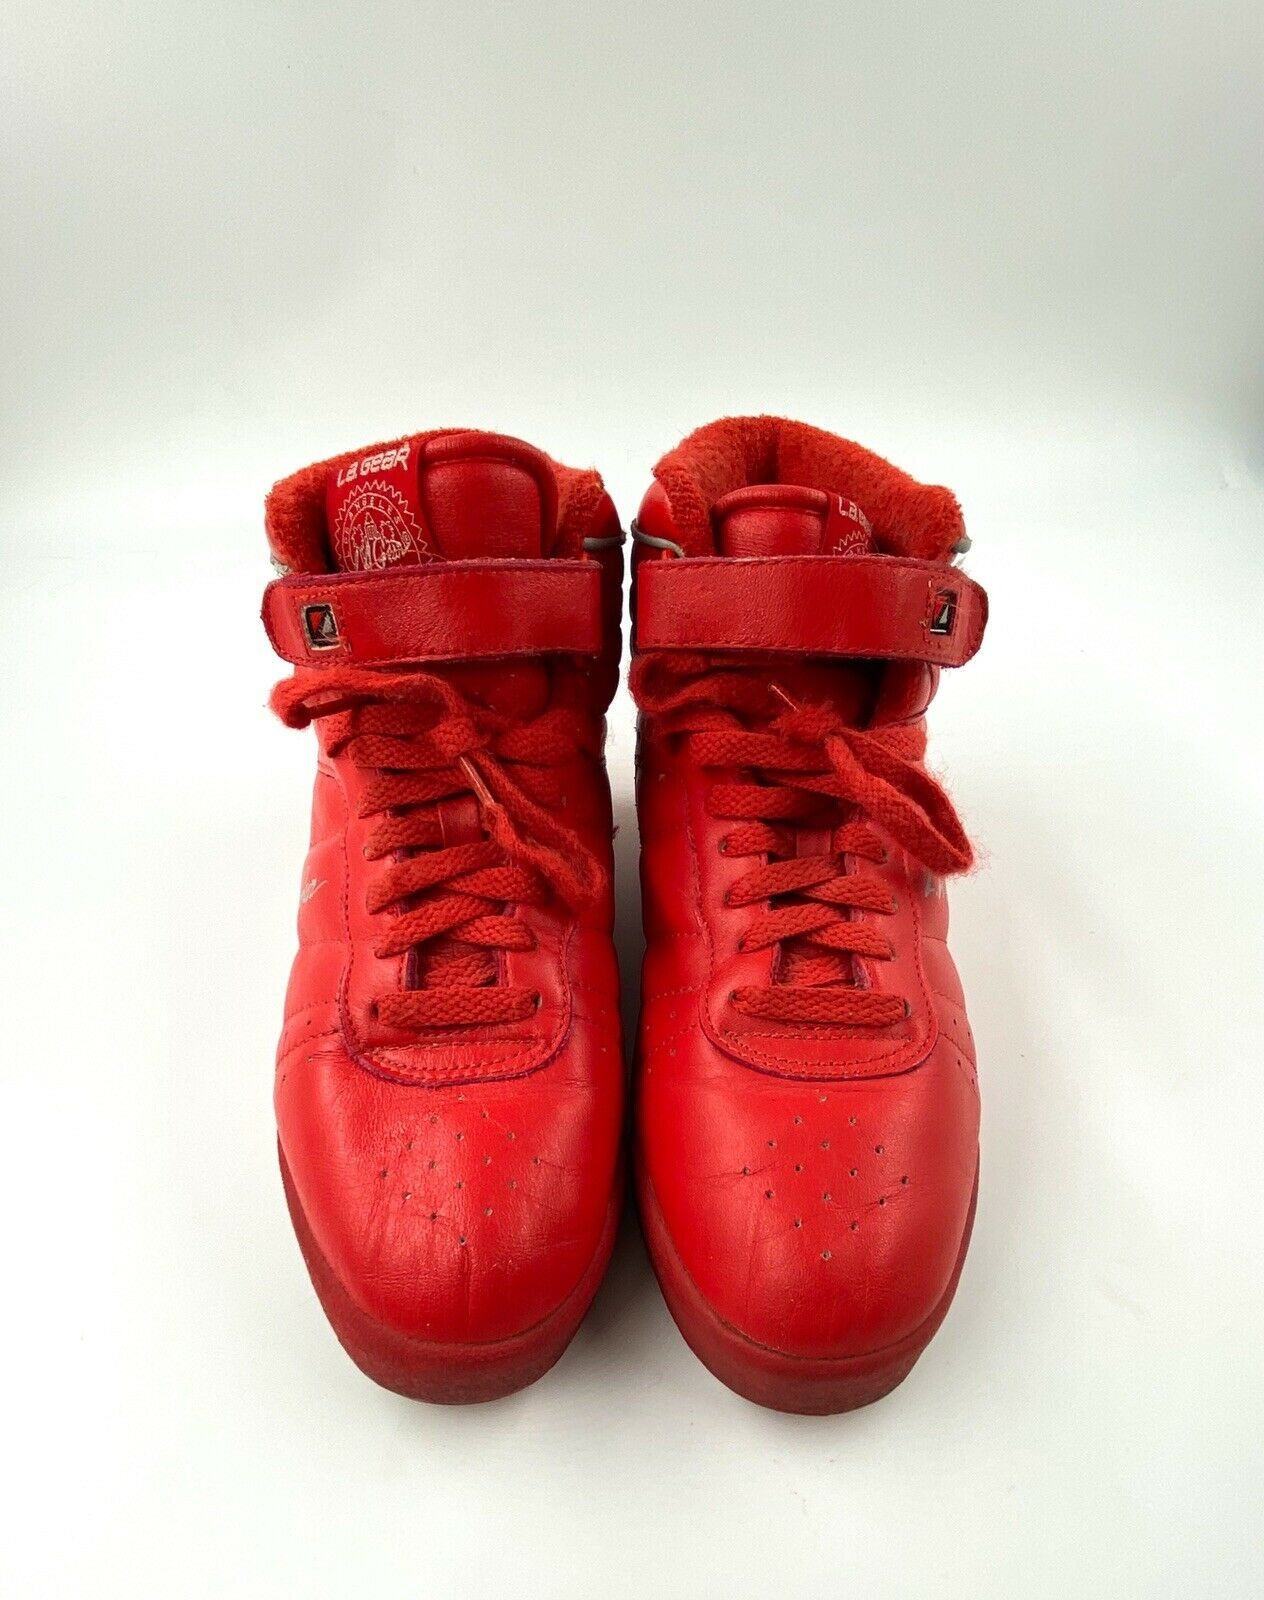 L.A. Gear 6.5 Vintage 80s Red Sneakers 90s Tennis… - image 2